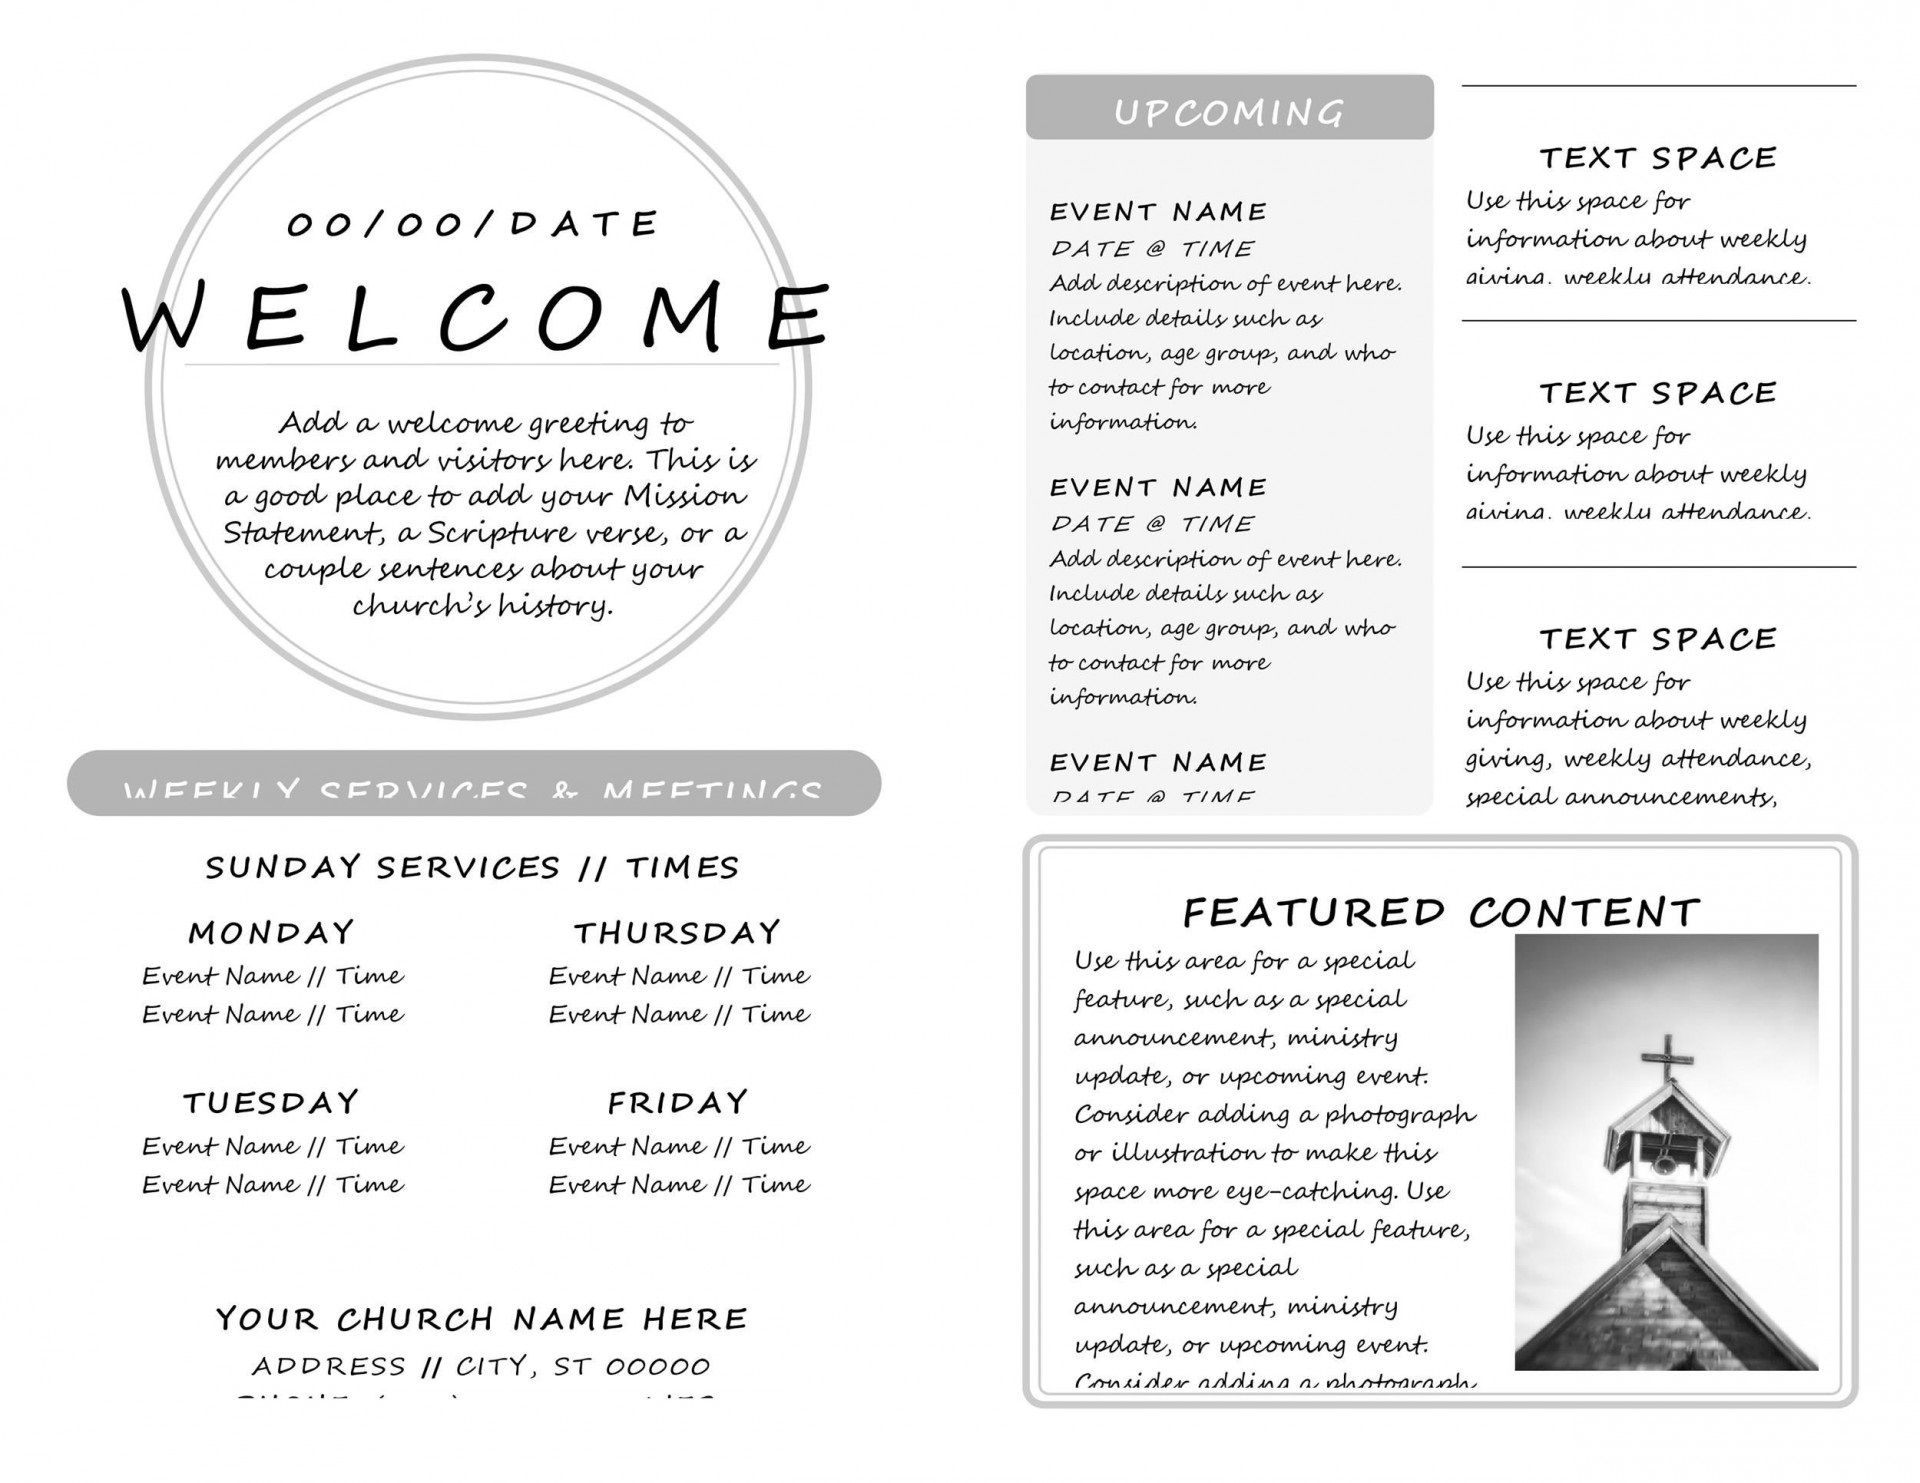 007 Awful Free Church Program Template Doc Highest Quality Full